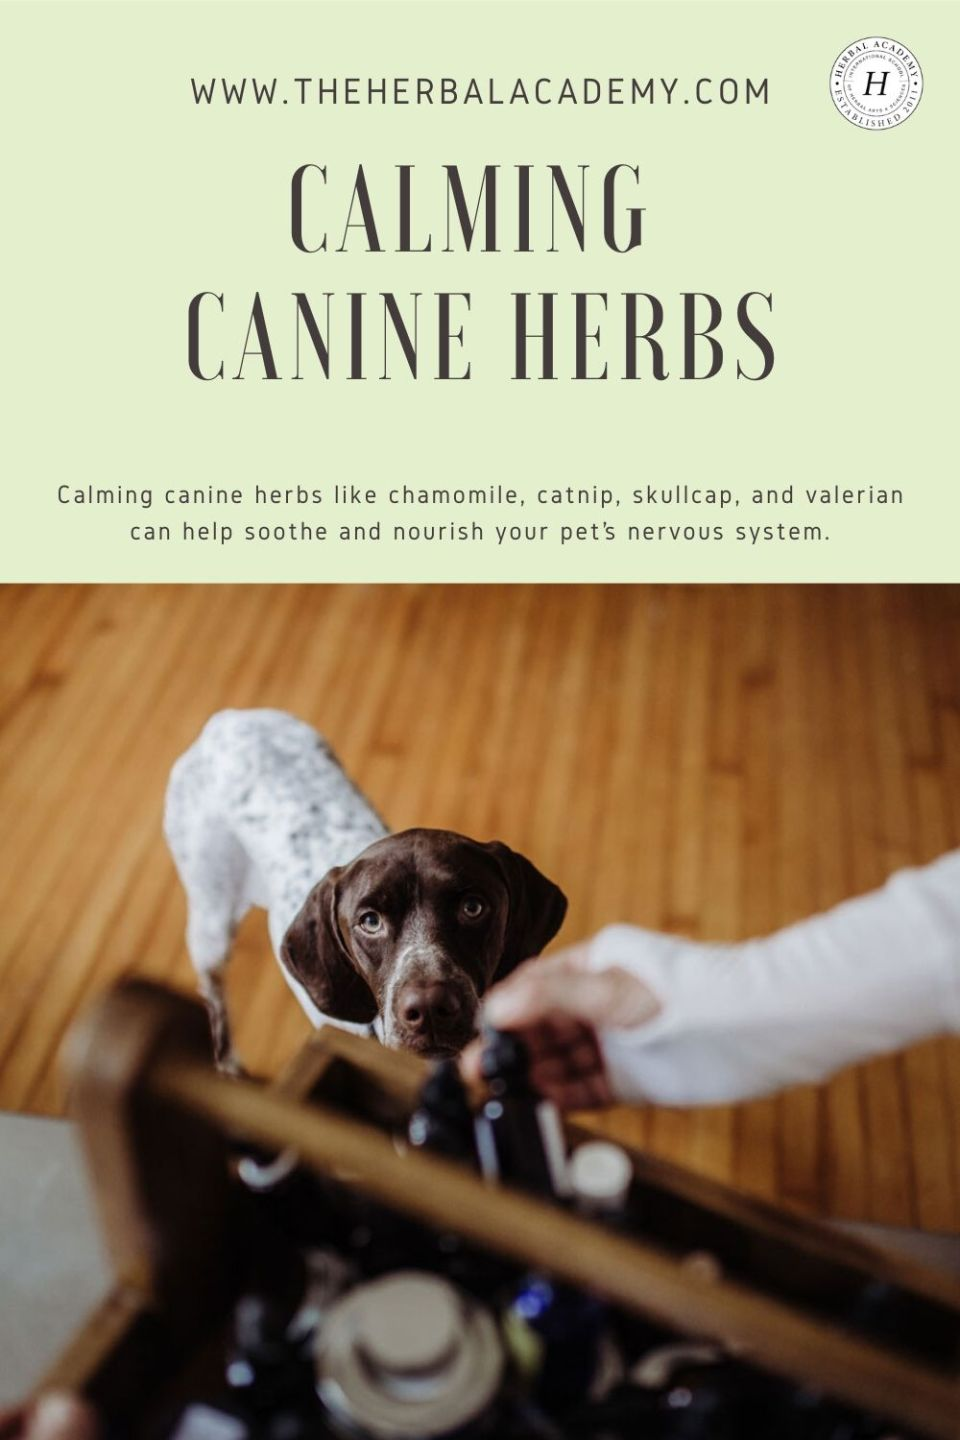 Calming Canine Herbs for Your Four-Legged Friends   The Herbal Academy   Calming canine herbs like chamomile, catnip, skullcap, and valerian can help soothe and nourish your pet's nervous system.